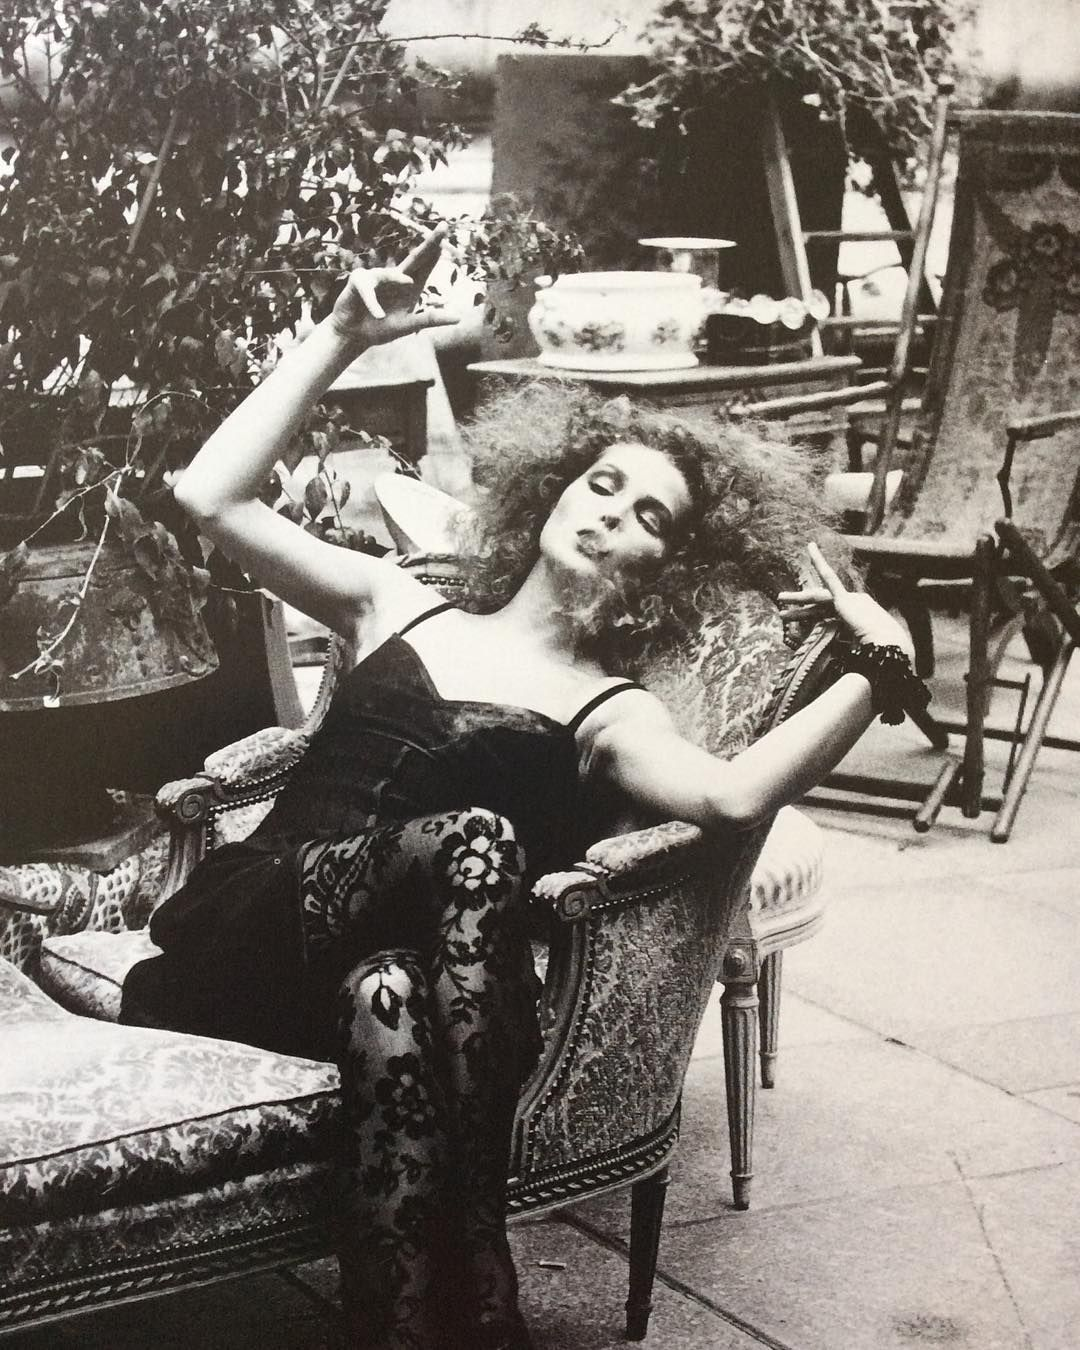 Pamela Hanson photograph for a #fashioneditorial #chicinnero in the September #1994 issue of Vogue Italia.  Carla Bruni wears #valentinoboutique. #hair by Sebastian, #makeup by #thierrymaudit and the #fashioneditor is #alicegentilucci.  #pamelahanson #photography #fashion #fashionphotography #blackandwhitephotography #1990s #carlabruni #carlasarkozy #magazines #print #vogue #voguemagazine #vogueitalia @pamela_hanson @maisonvalentino @alicegentilucci @carlabruniofficial @vogueitalia